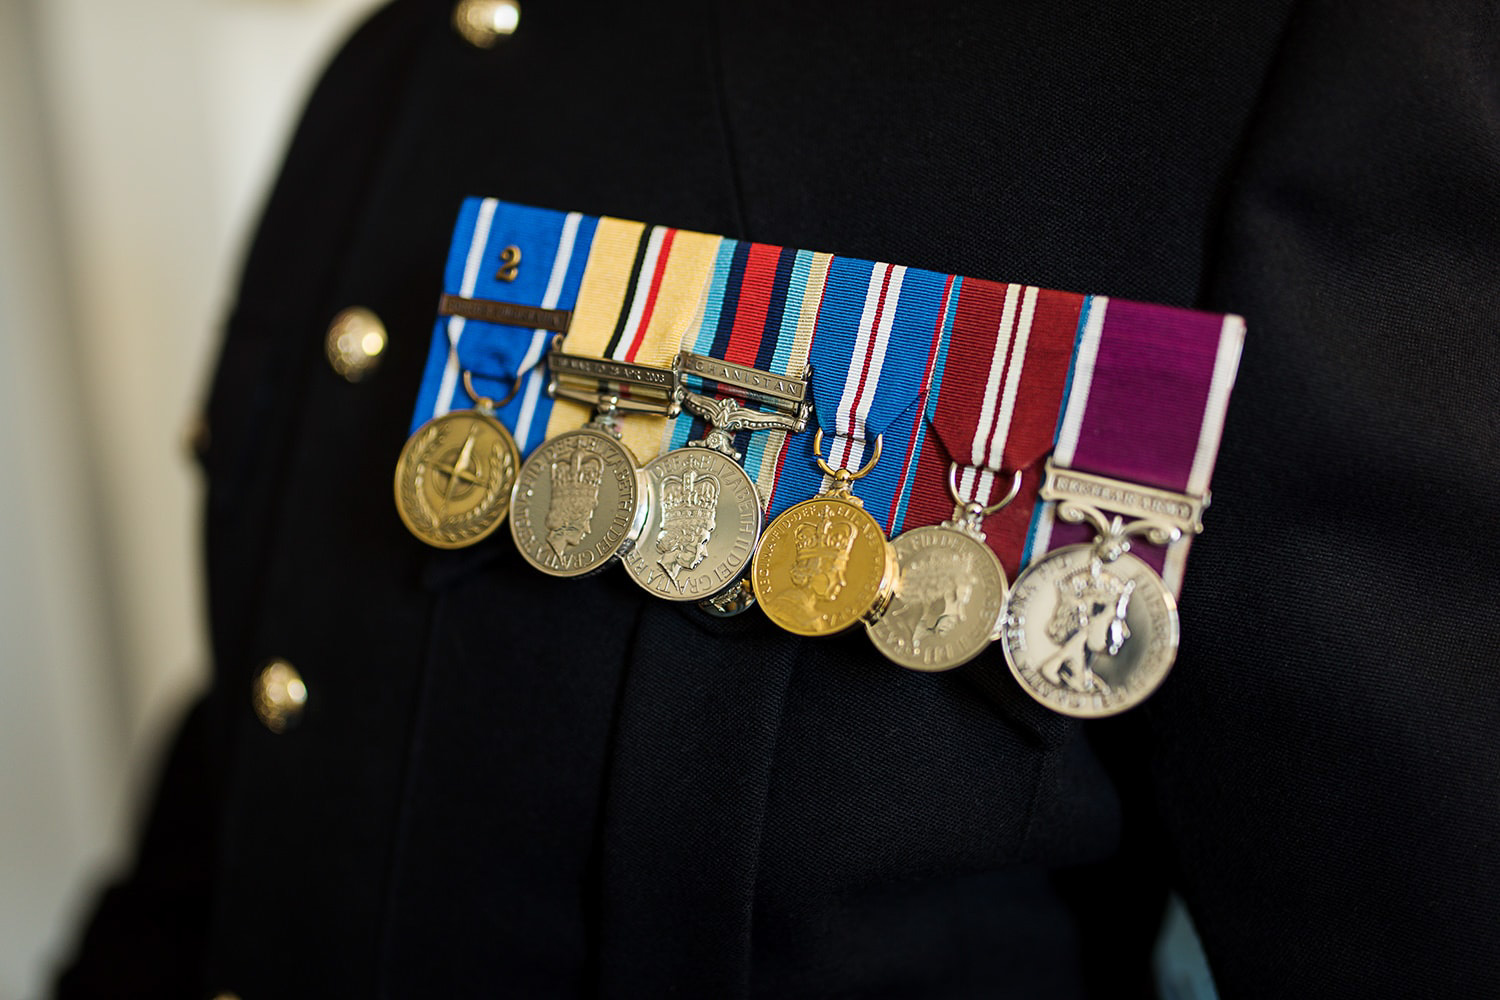 military-uniform-wedding-medals.jpg